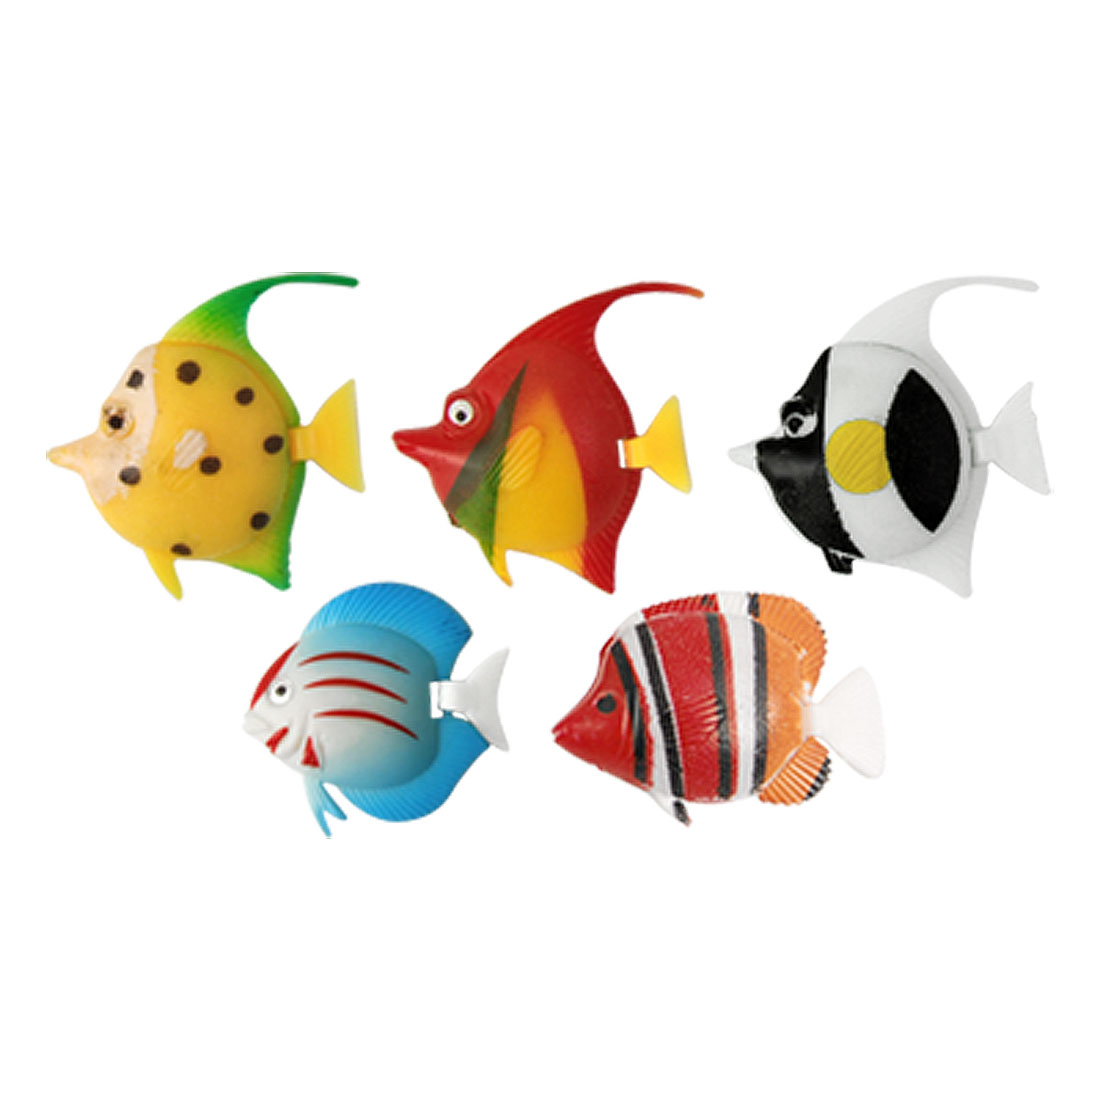 Aquarium Fish Bowl Plastic Simulation Multi-colored Fishes Ornament 5 Pcs